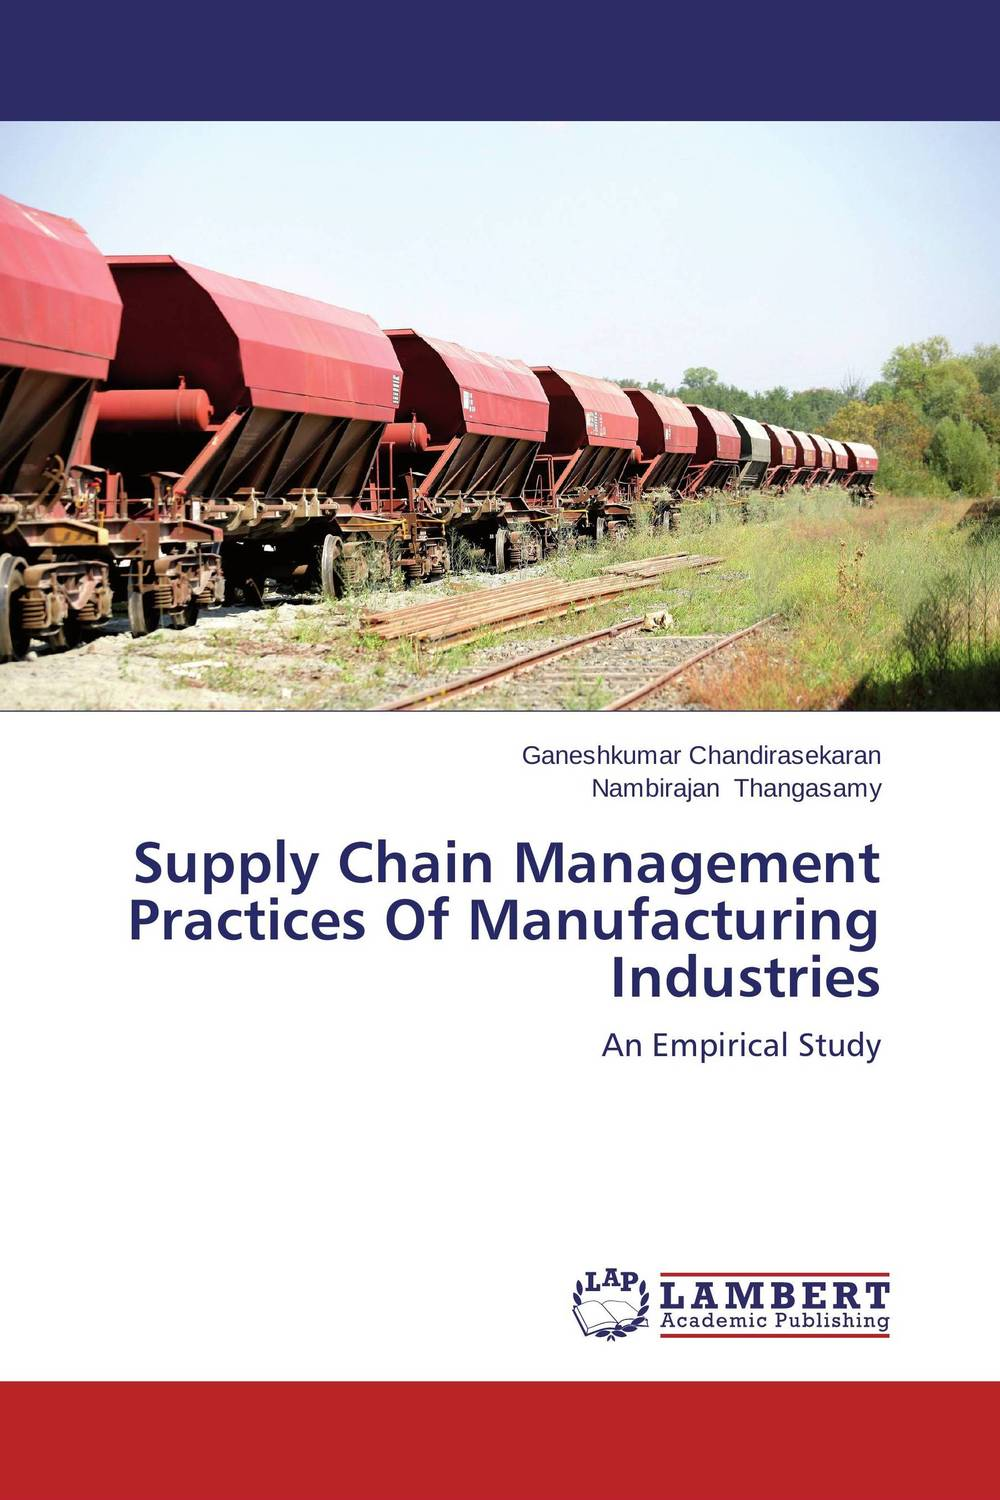 Supply Chain Management Practices Of Manufacturing Industries vengadasan govindasamy sustainable supply chain management practices